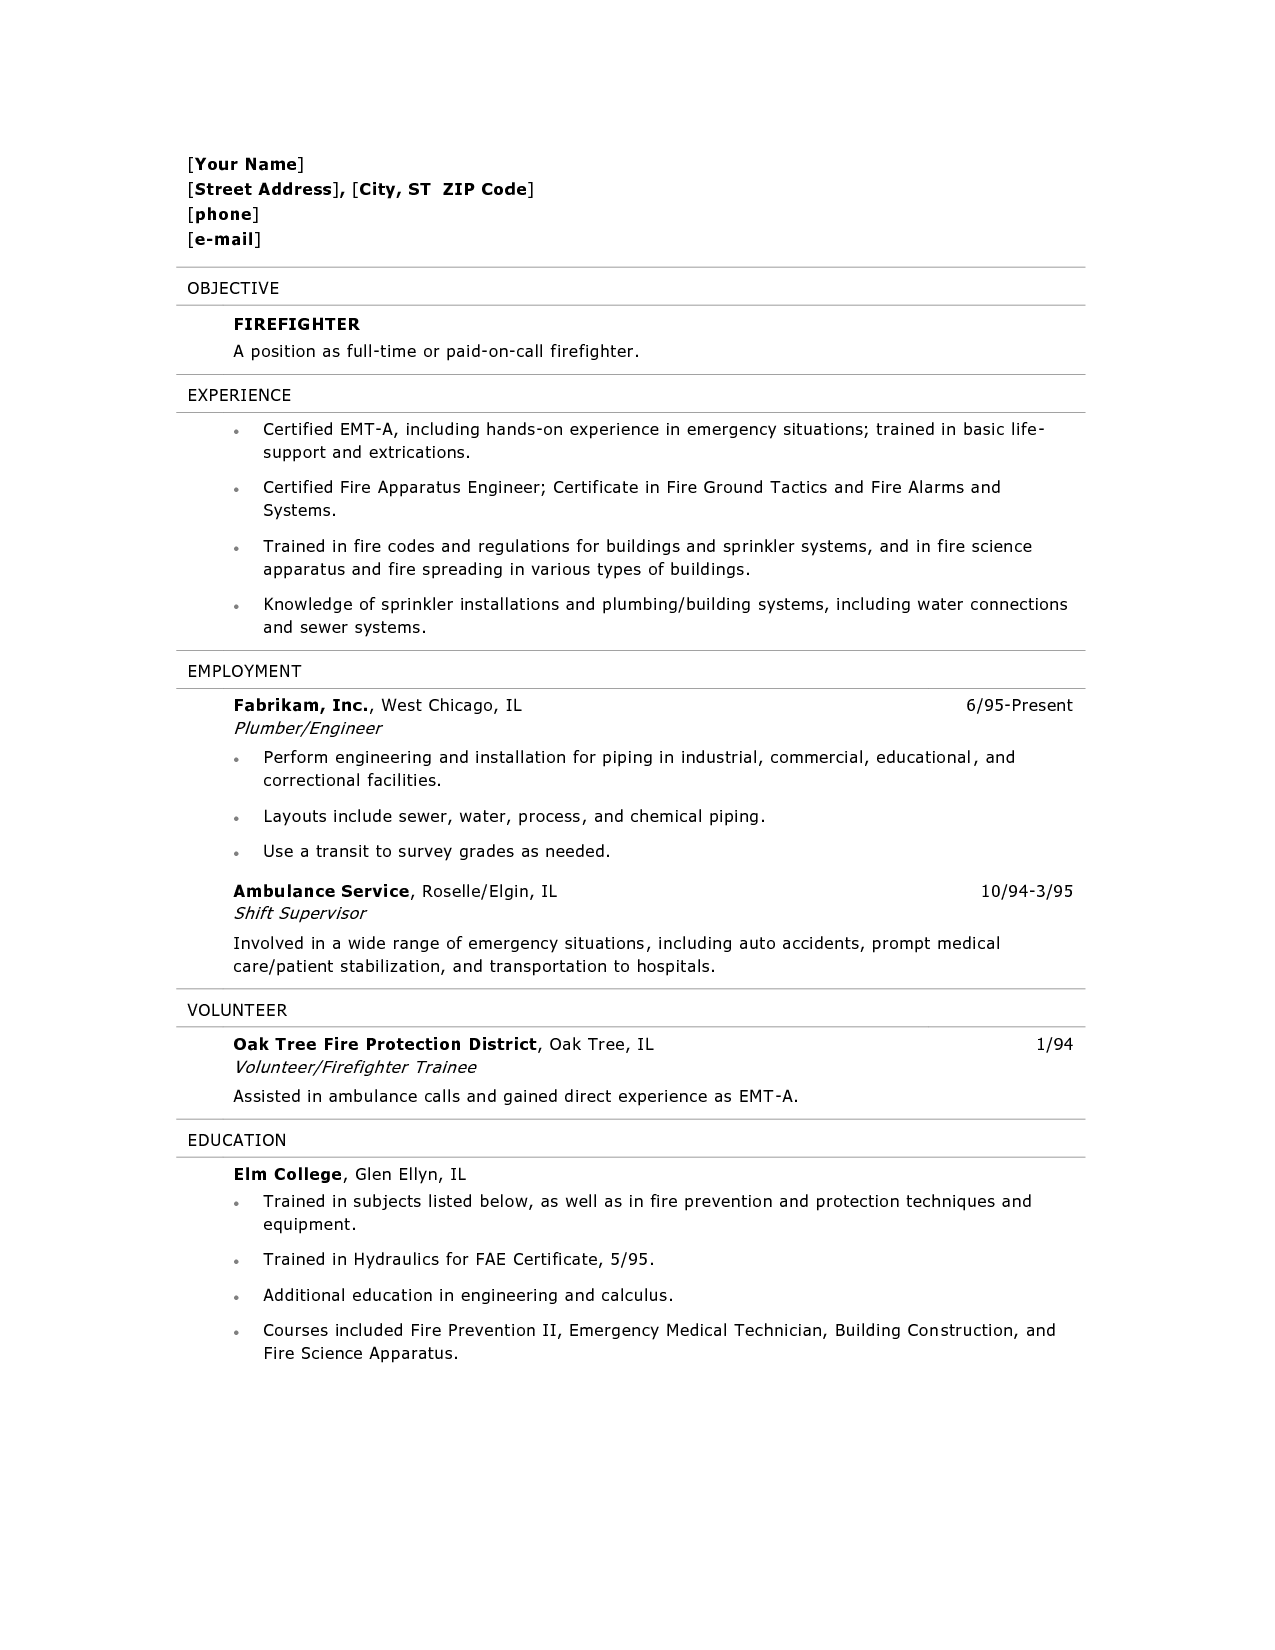 examples of fire fighters resume